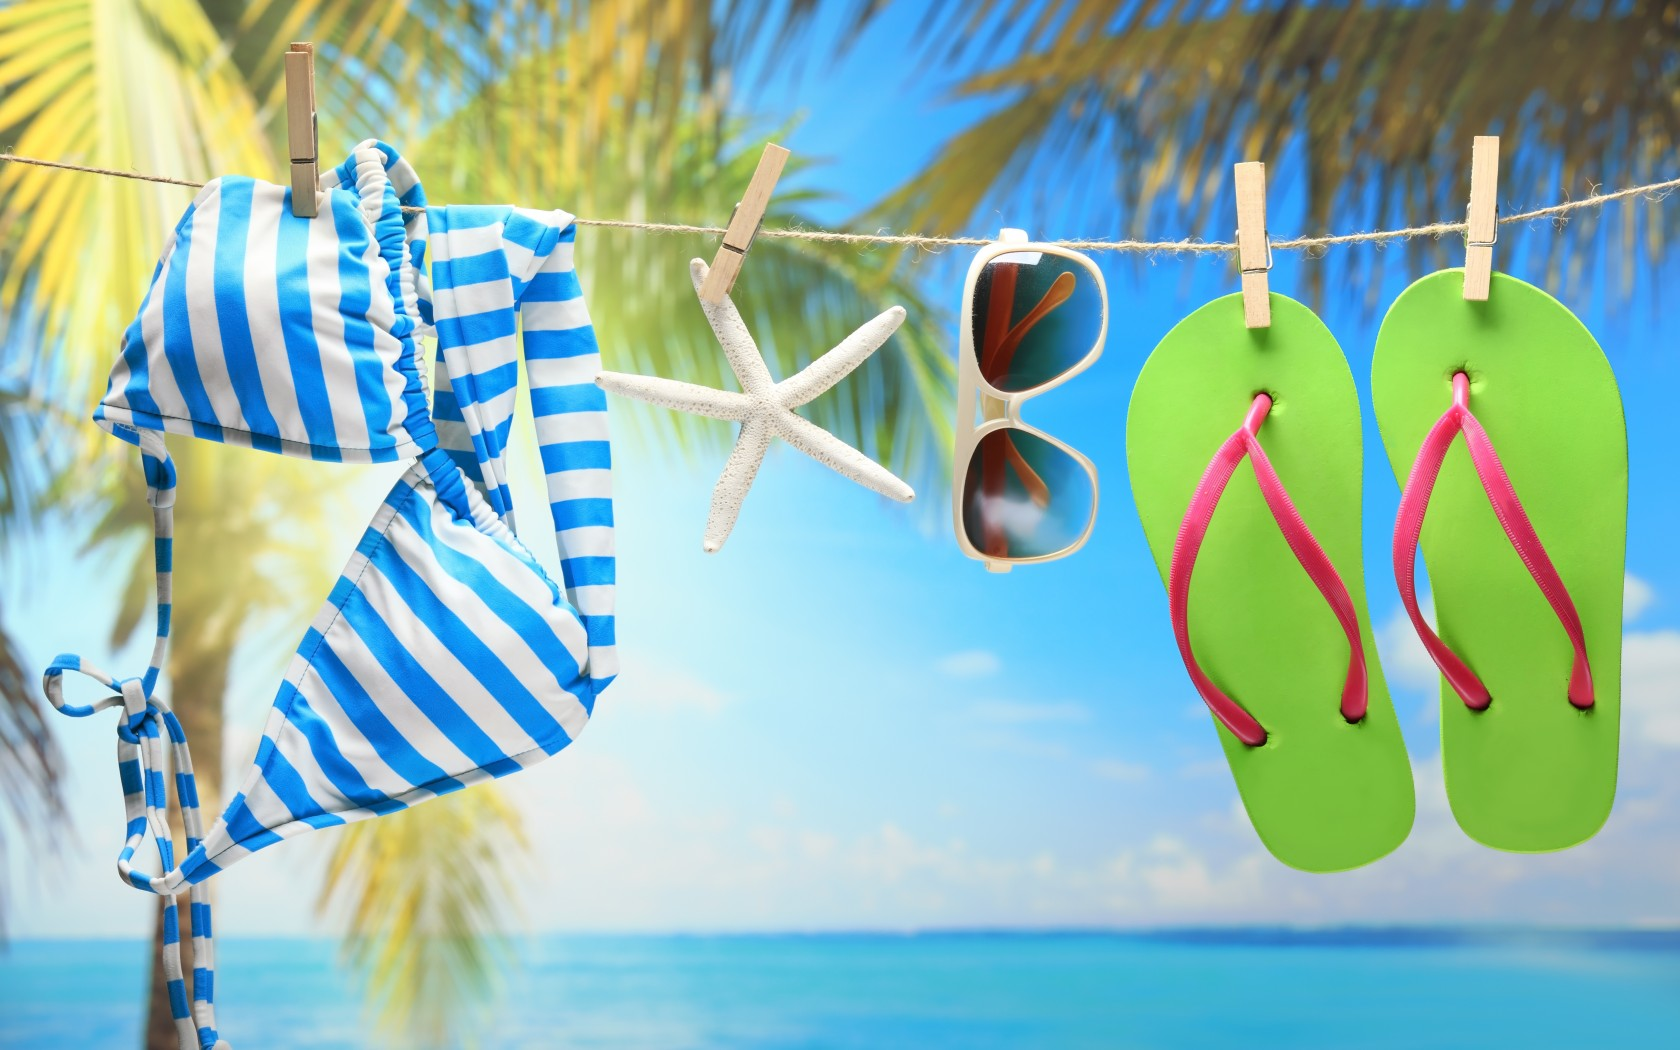 Swimwear Sunglasses And Green Flip Flops On The Beach wallpaper by 1680x1050